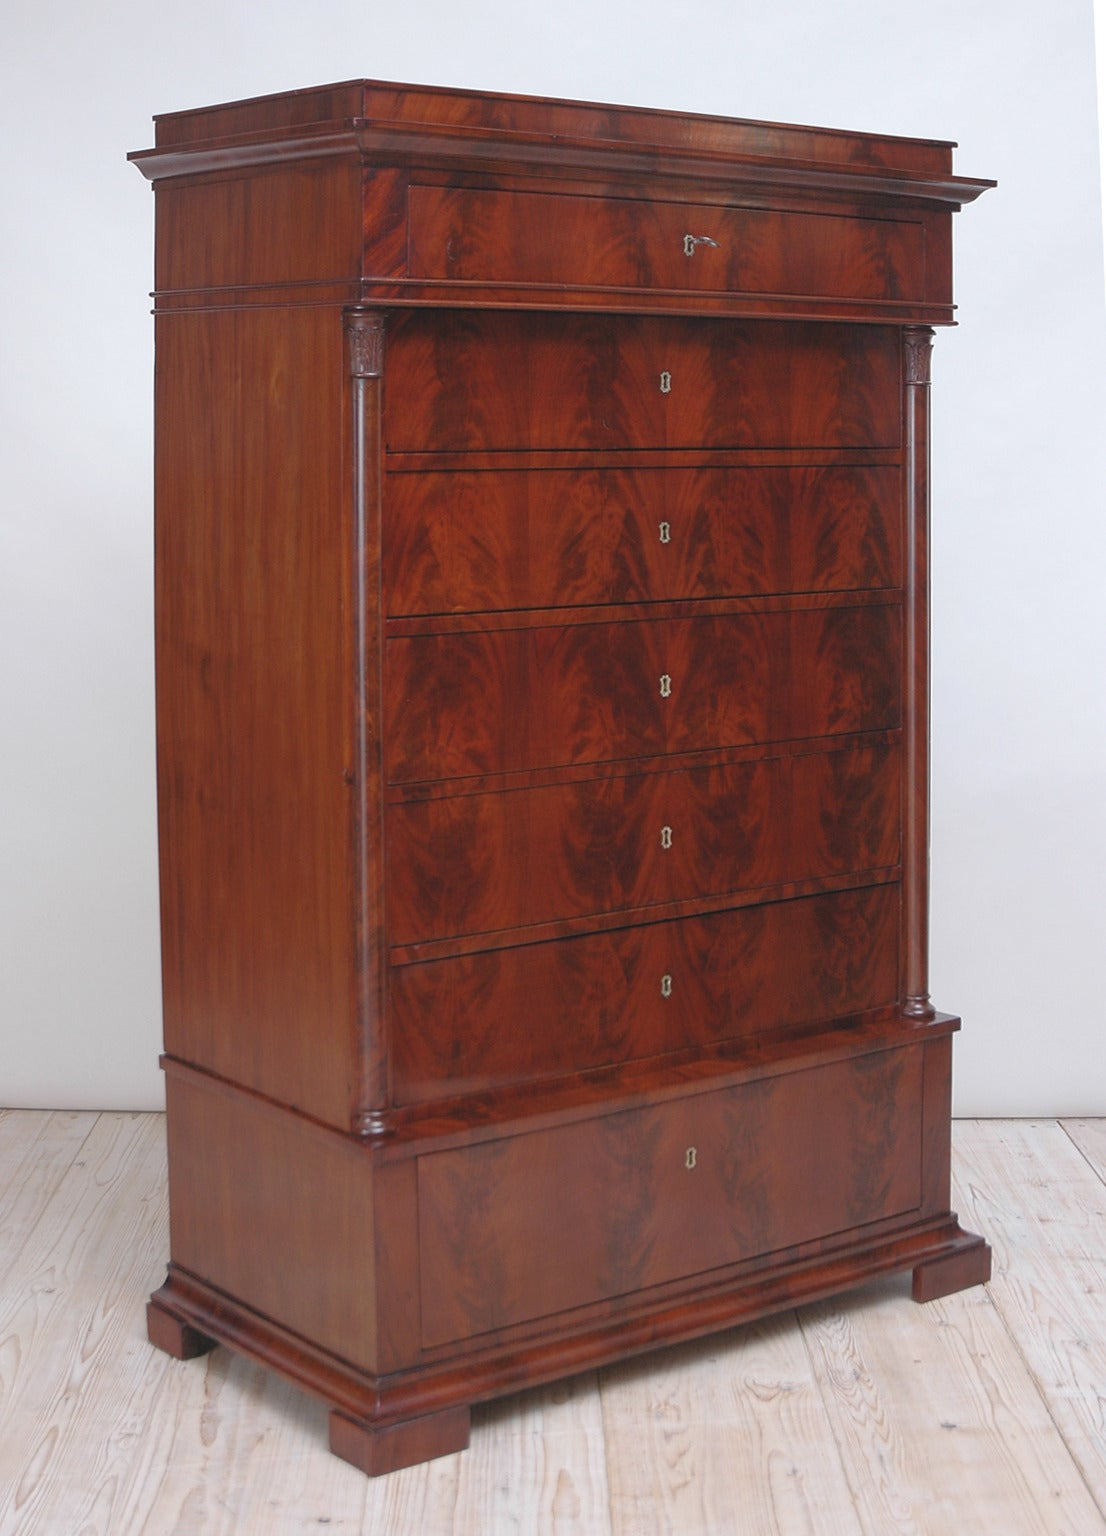 A handsome late Empire or early Biedermeier tall chest on chest with seven drawers and pedestal top. Middle section is flanked by split-turned columns with well-articulated palmette carvings on the capitals. Features beautiful book-matched, crotch